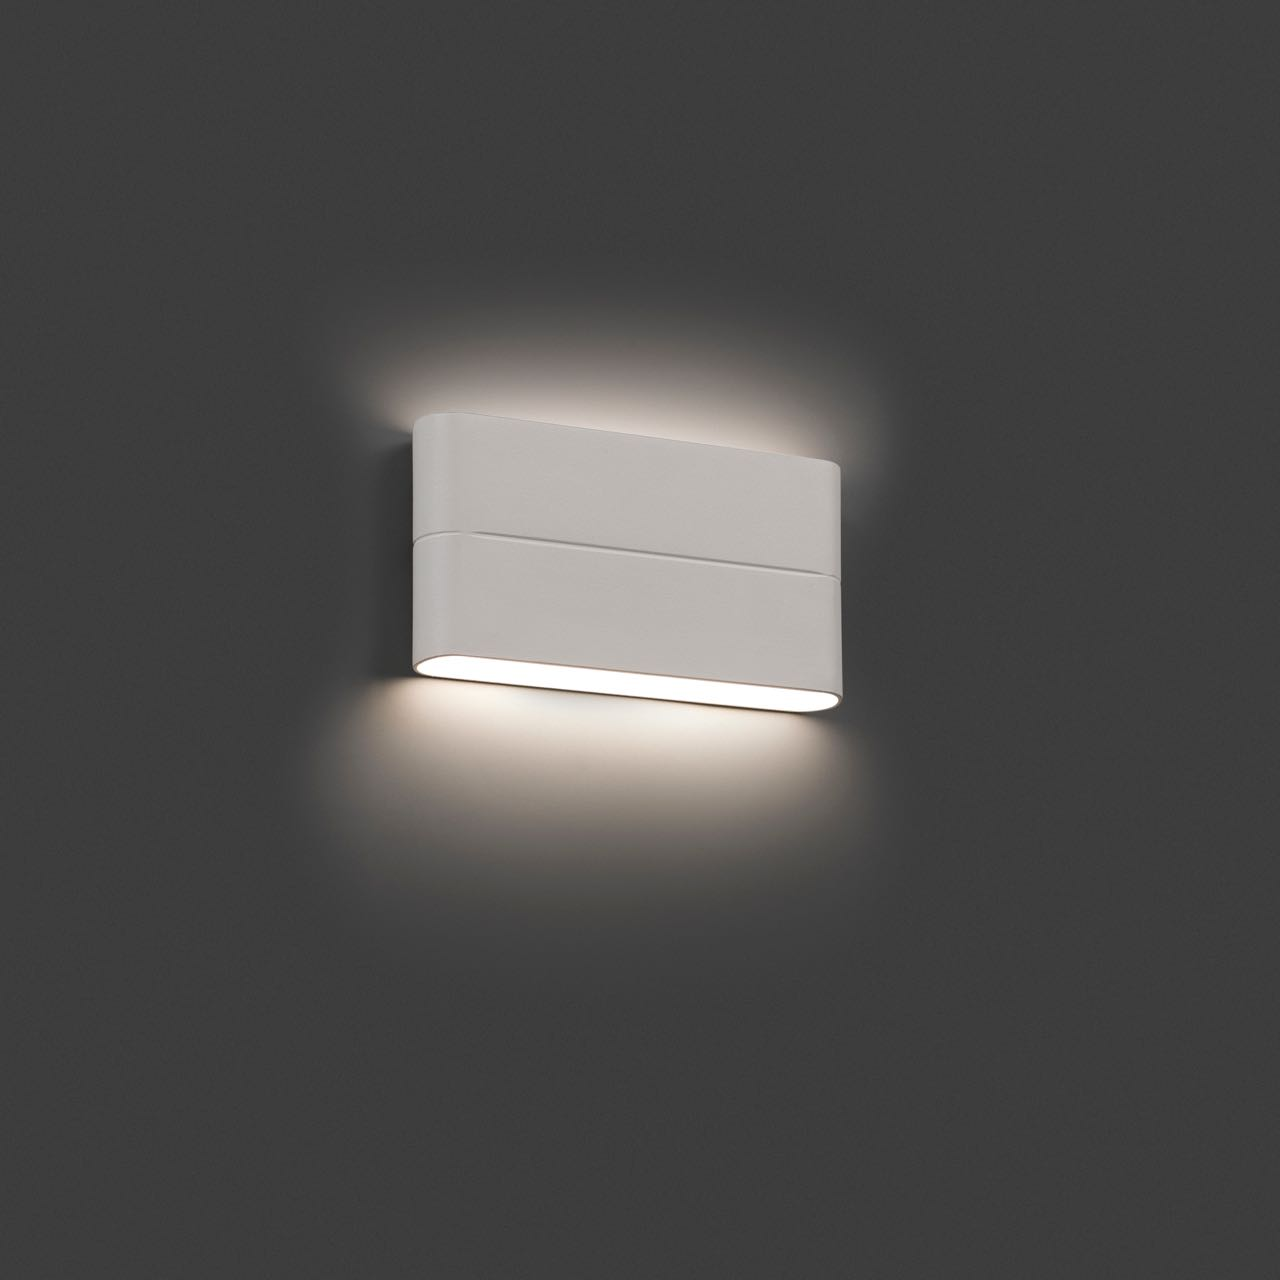 L mpara de exterior para paredes con led integrado 12w - Lamparas de aplique para pared ...